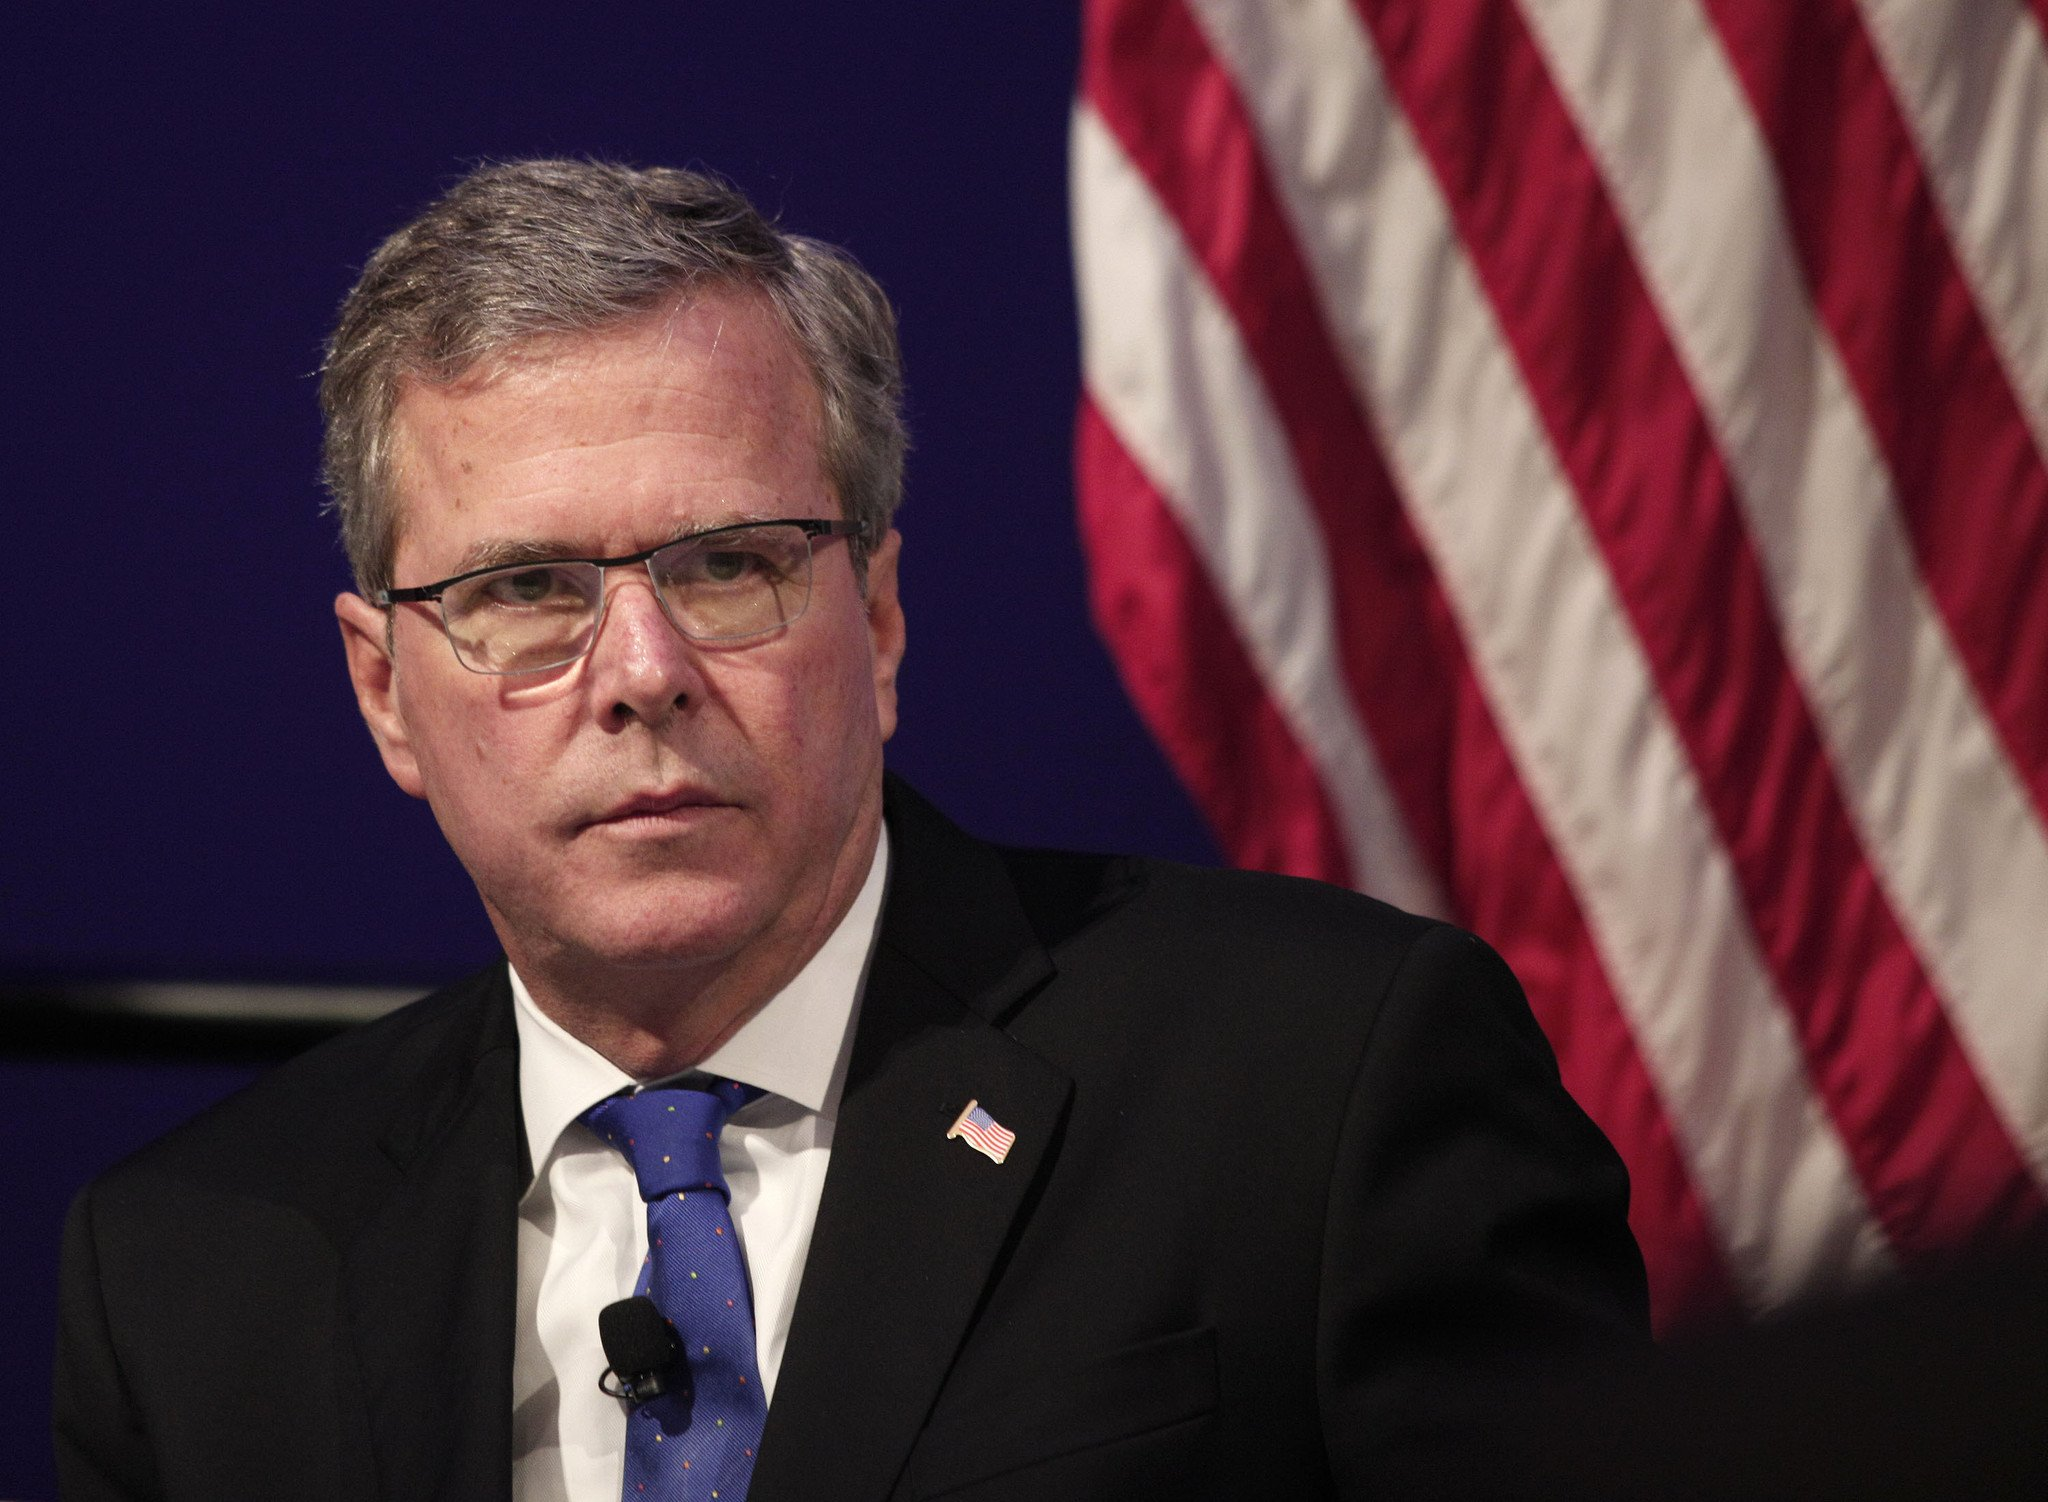 bush senior personals Policy review, october 5, 2018---george w bush, the 43rd president of the united states, died today at methodist hospital in houston, texas he was 72 the cause of death was announced as heart failure.